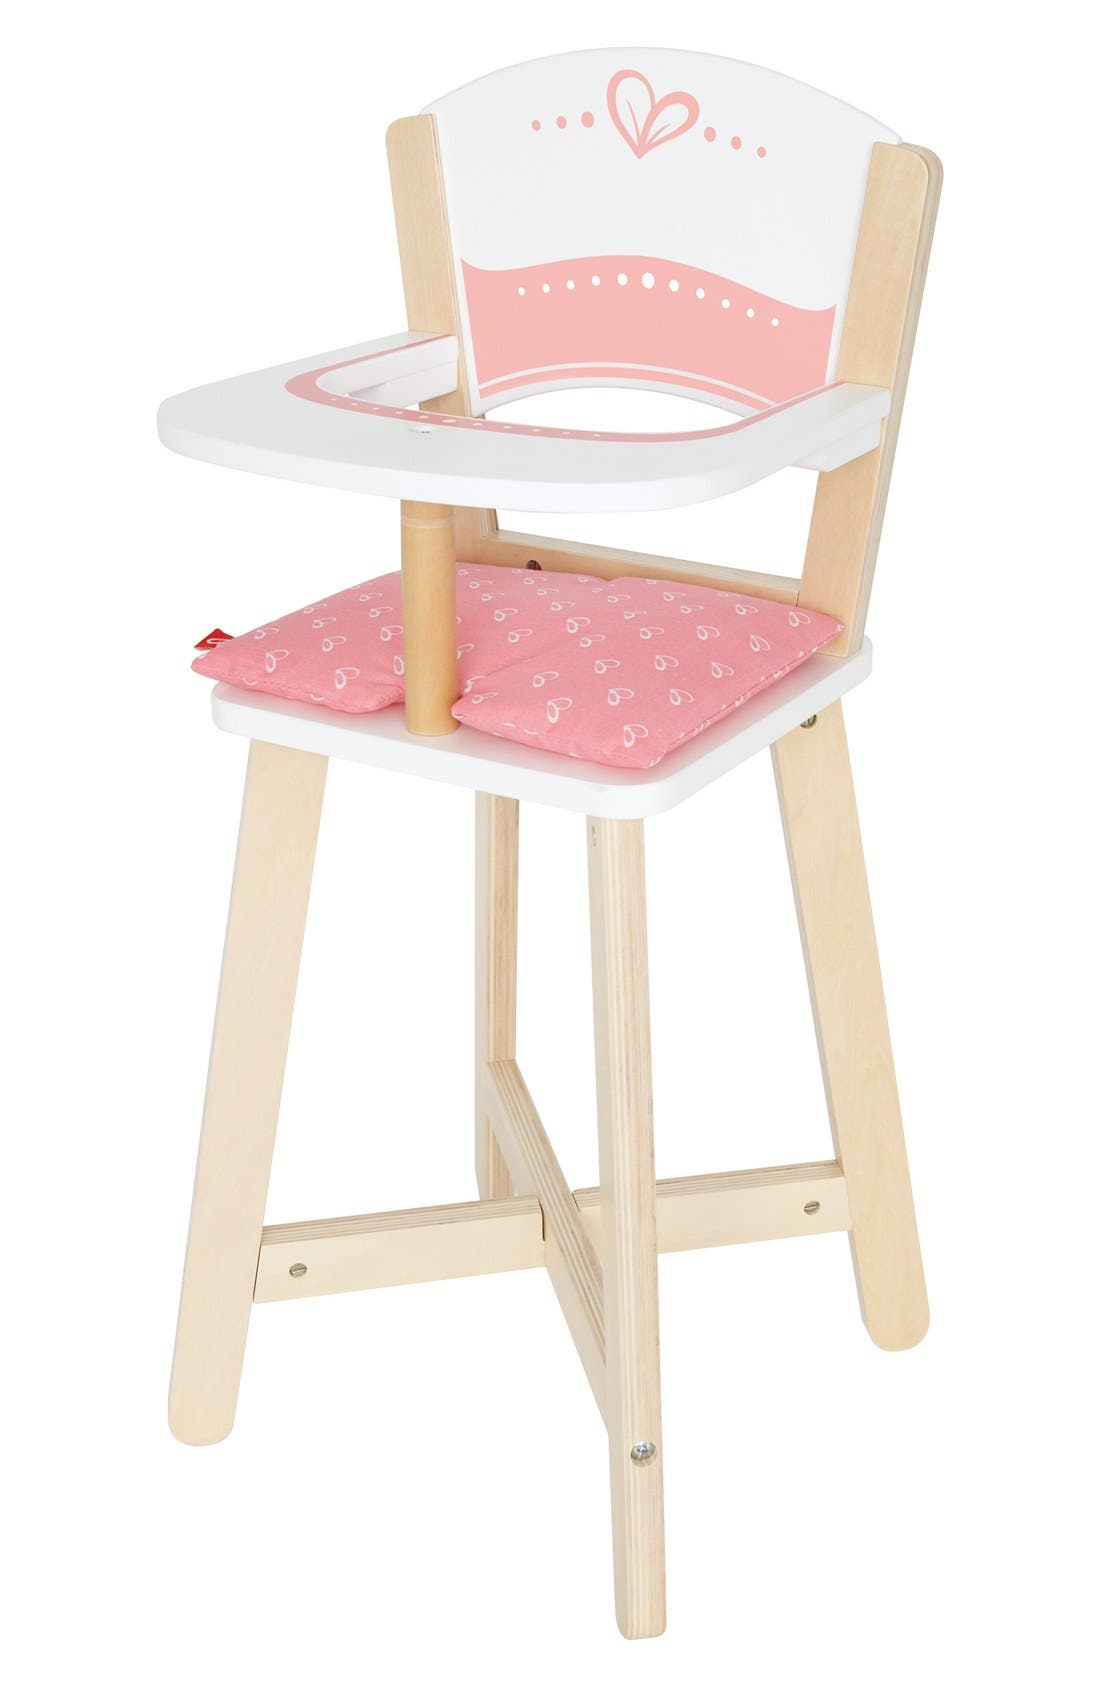 Main Image - Hape Play Highchair